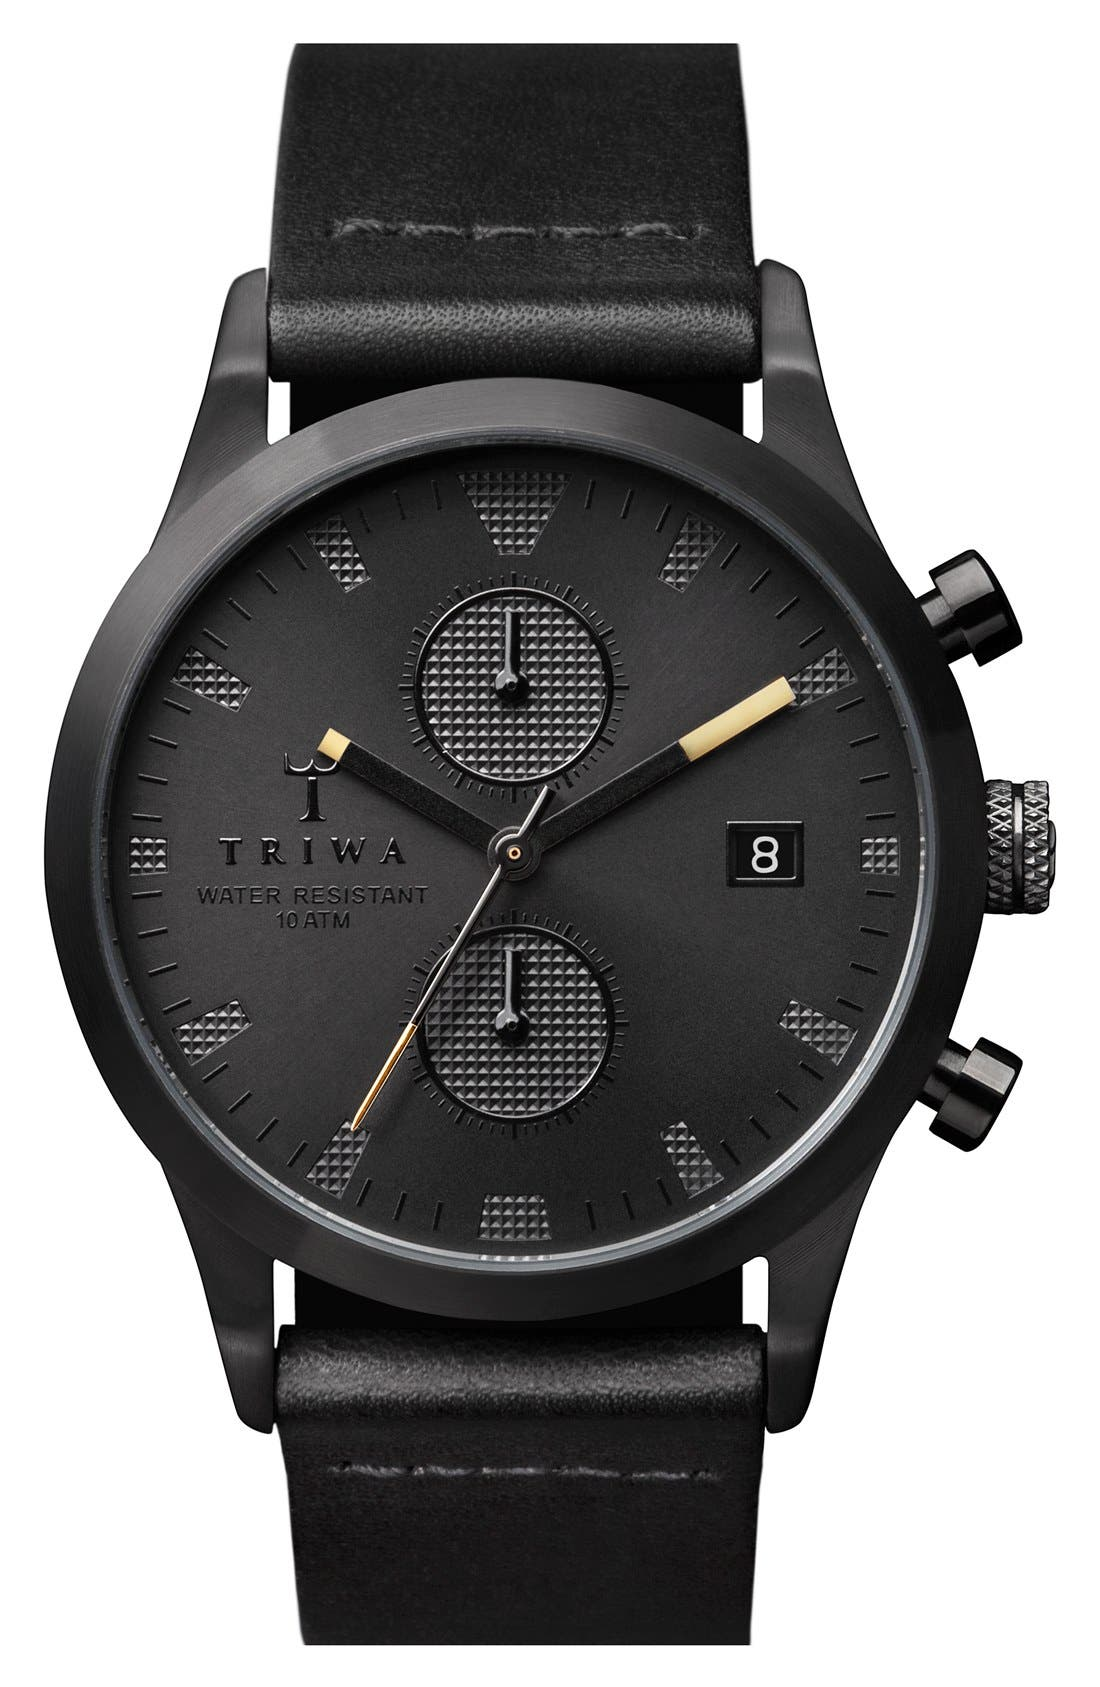 Main Image - TRIWA Sort of Black Chronograph Leather Strap Watch, 38mm